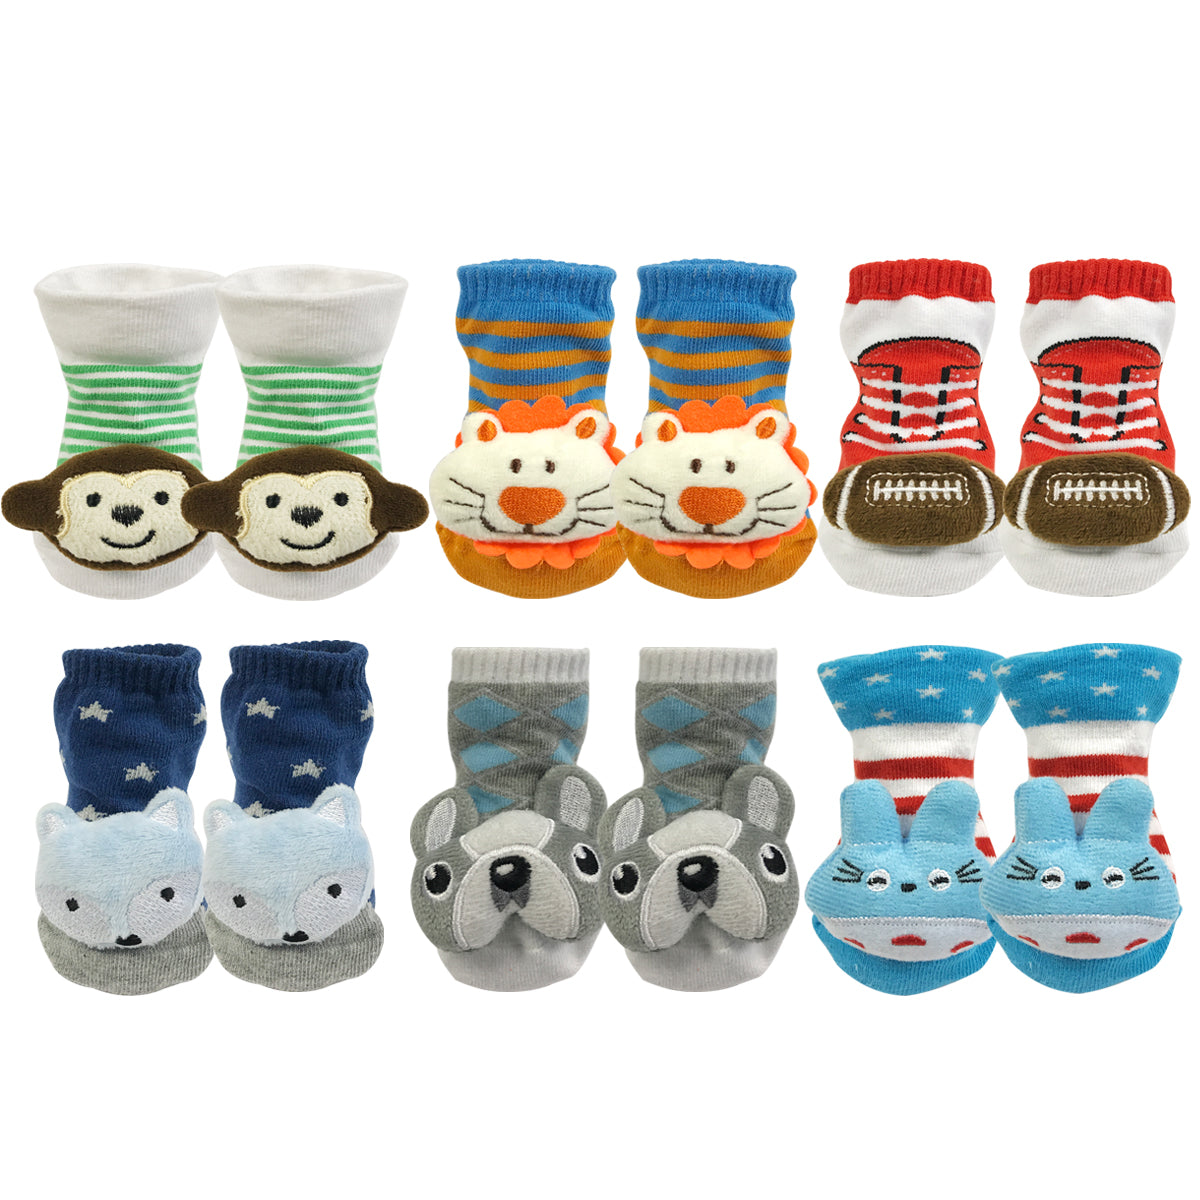 Wrapables Cute 3D Cartoon Anti-Skid Baby Booties Sock Slipper Shoes (Set of 6)